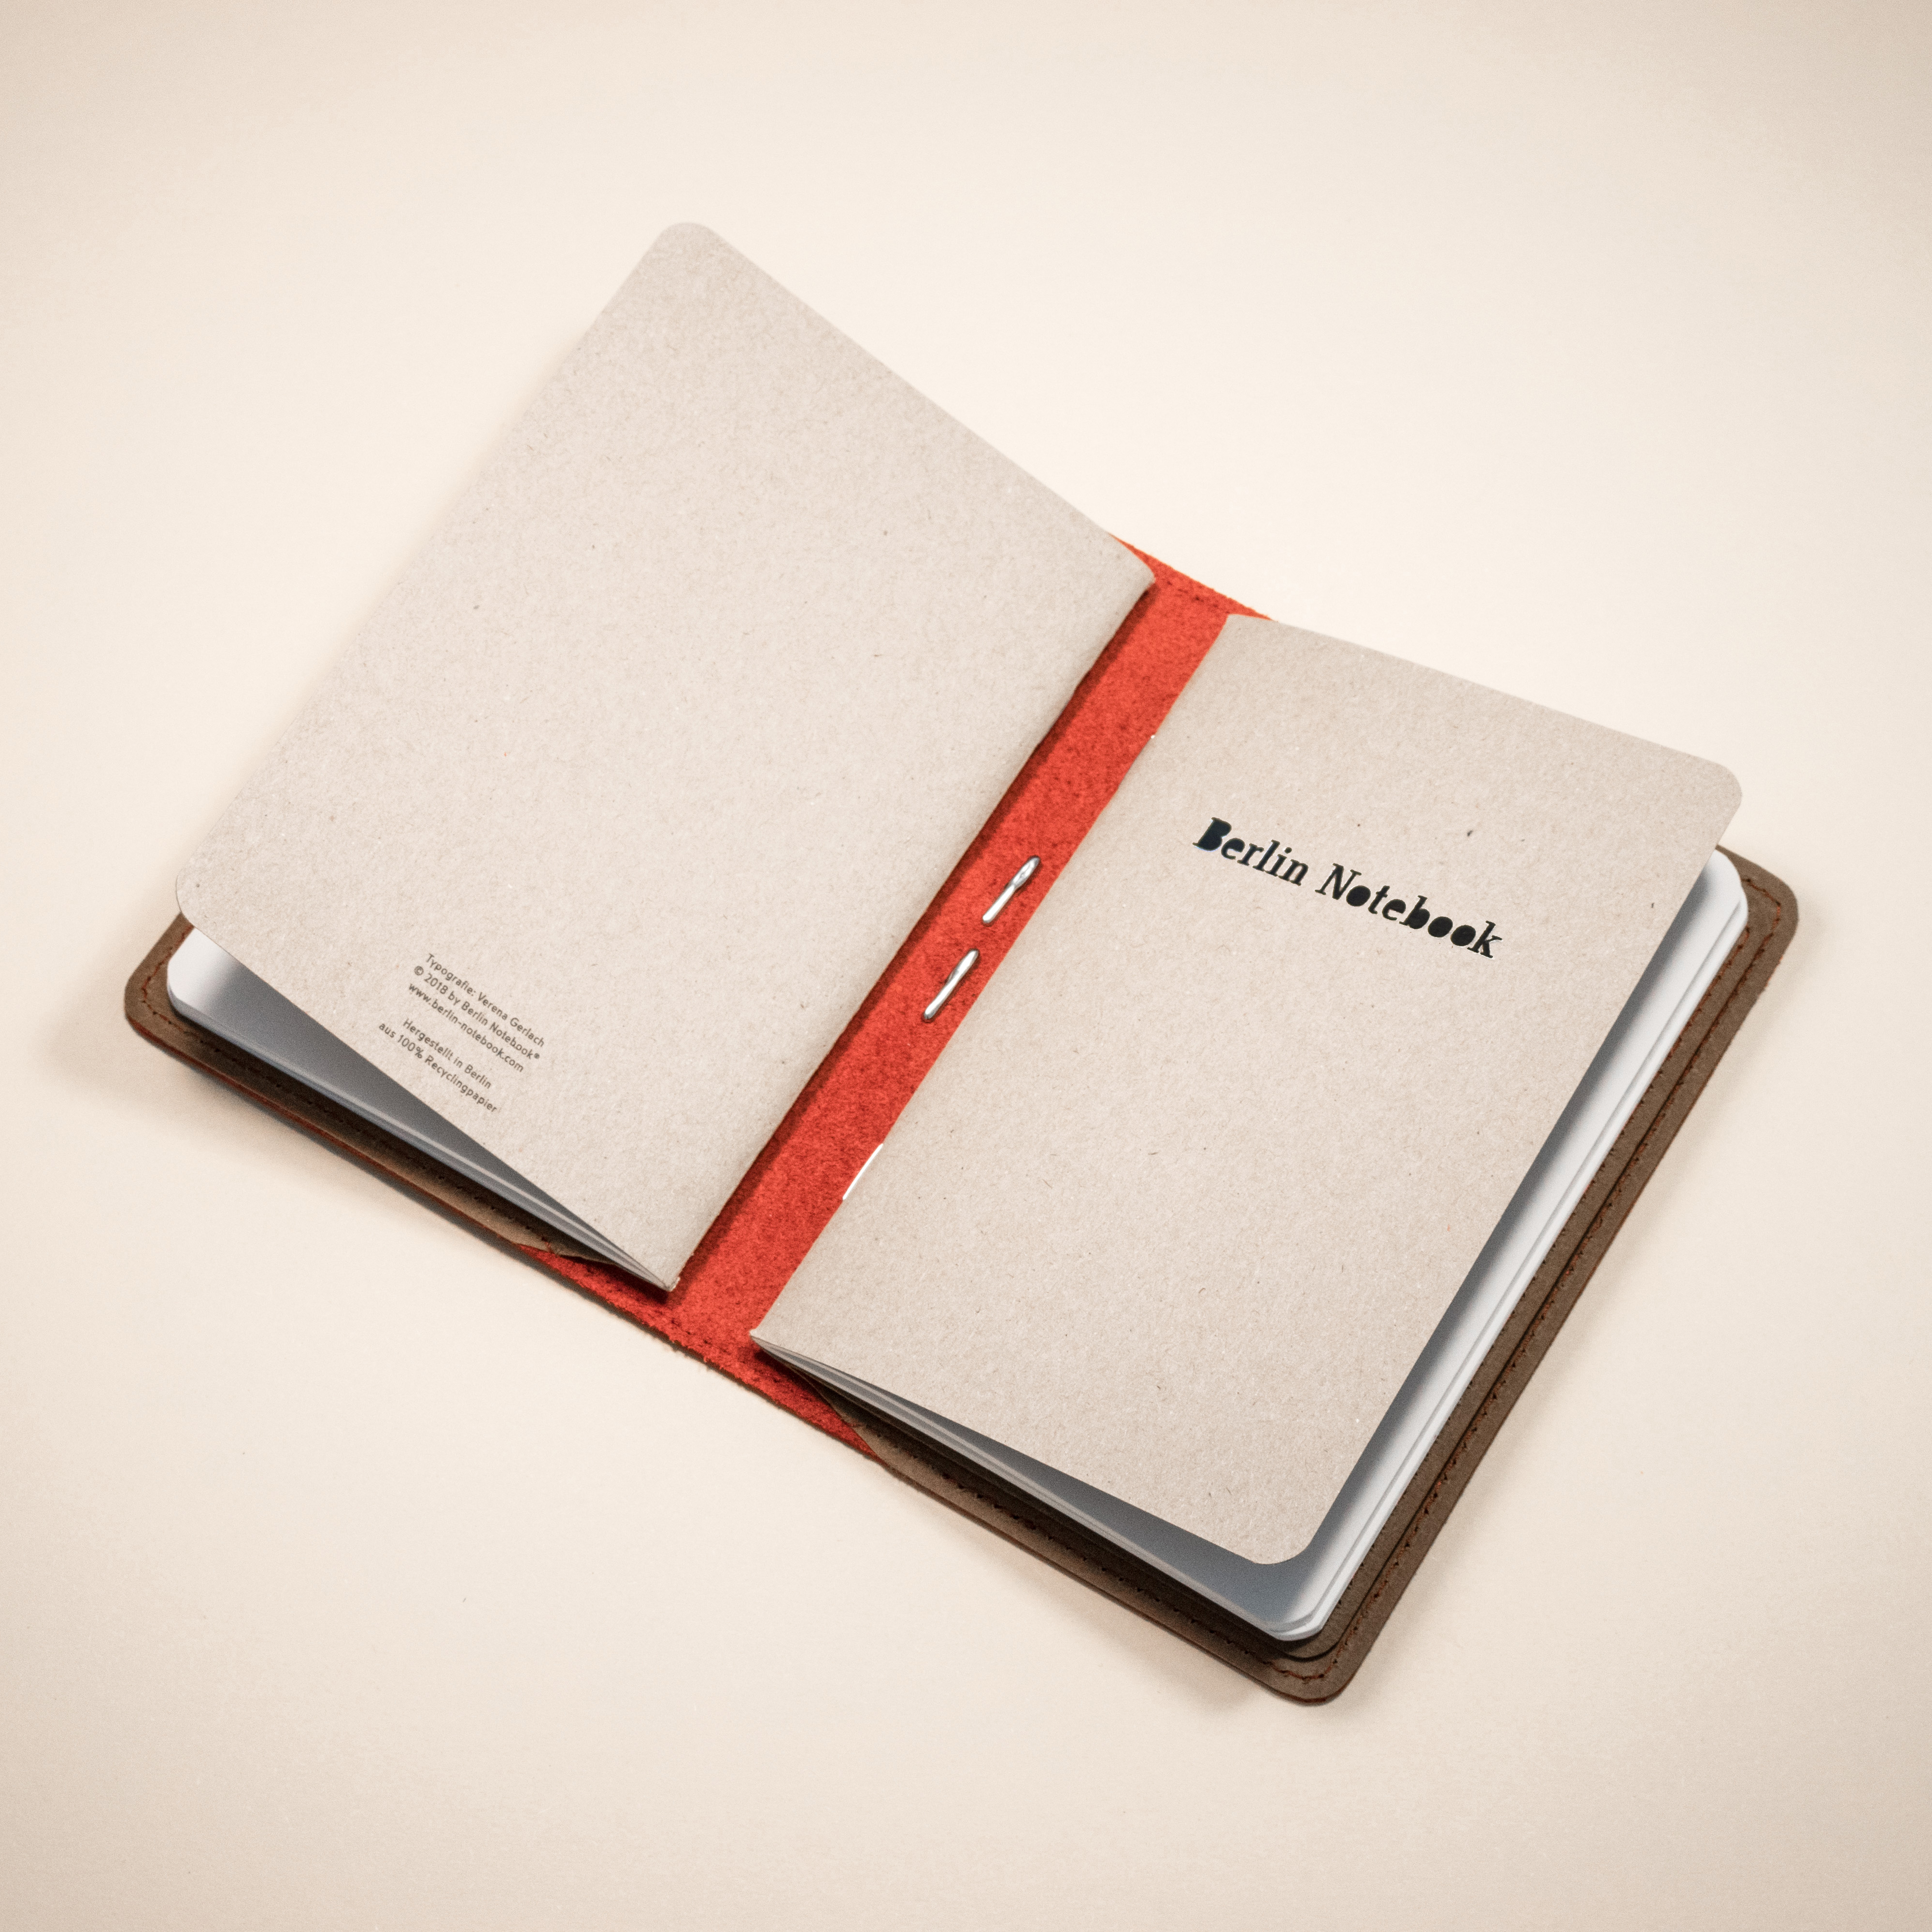 Berlin Notebook Leather Notebook Cover - Red Fire